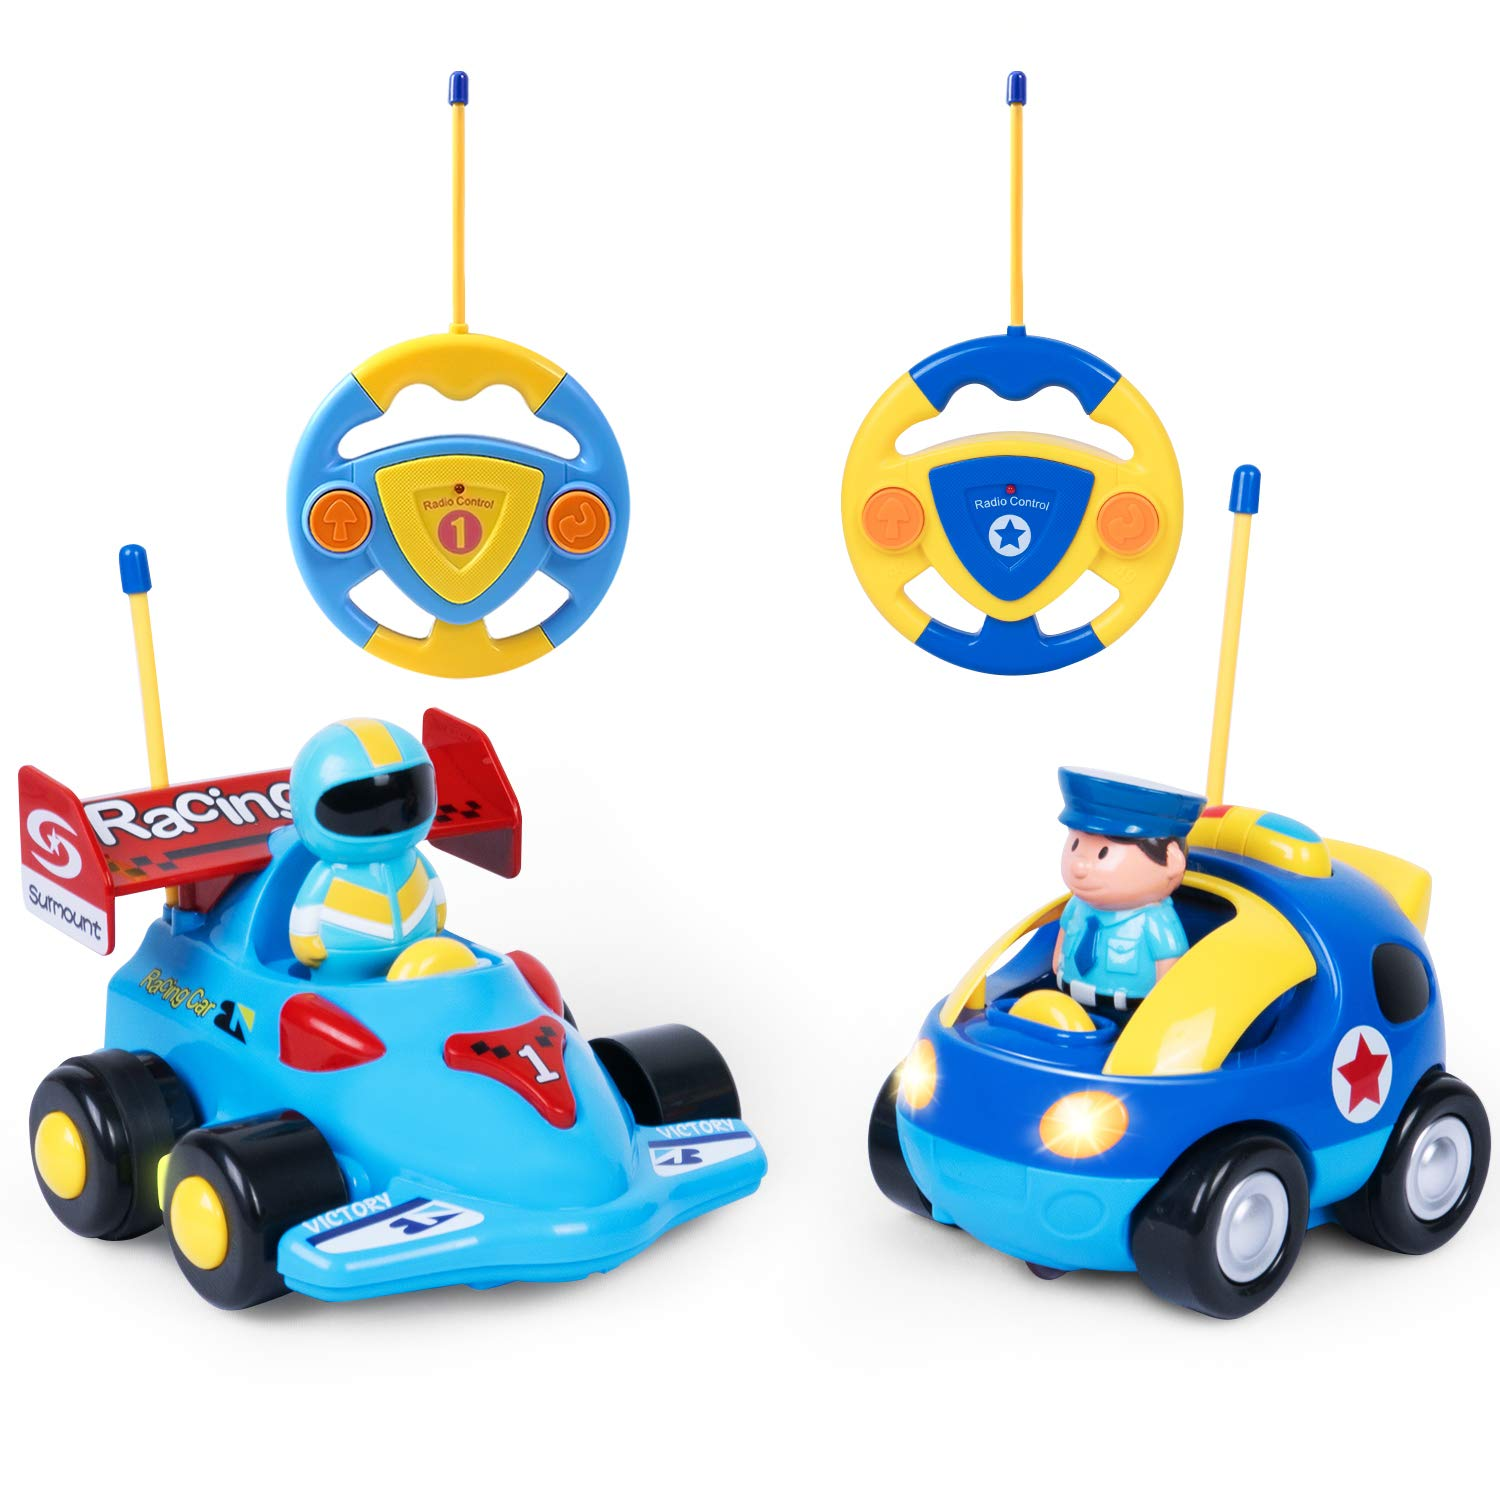 ANTAPRCIS Cartoon Remote Control Car Racer Toys Toddlers Birthday Gift Present 3 Year Olds Boys Girls Kids